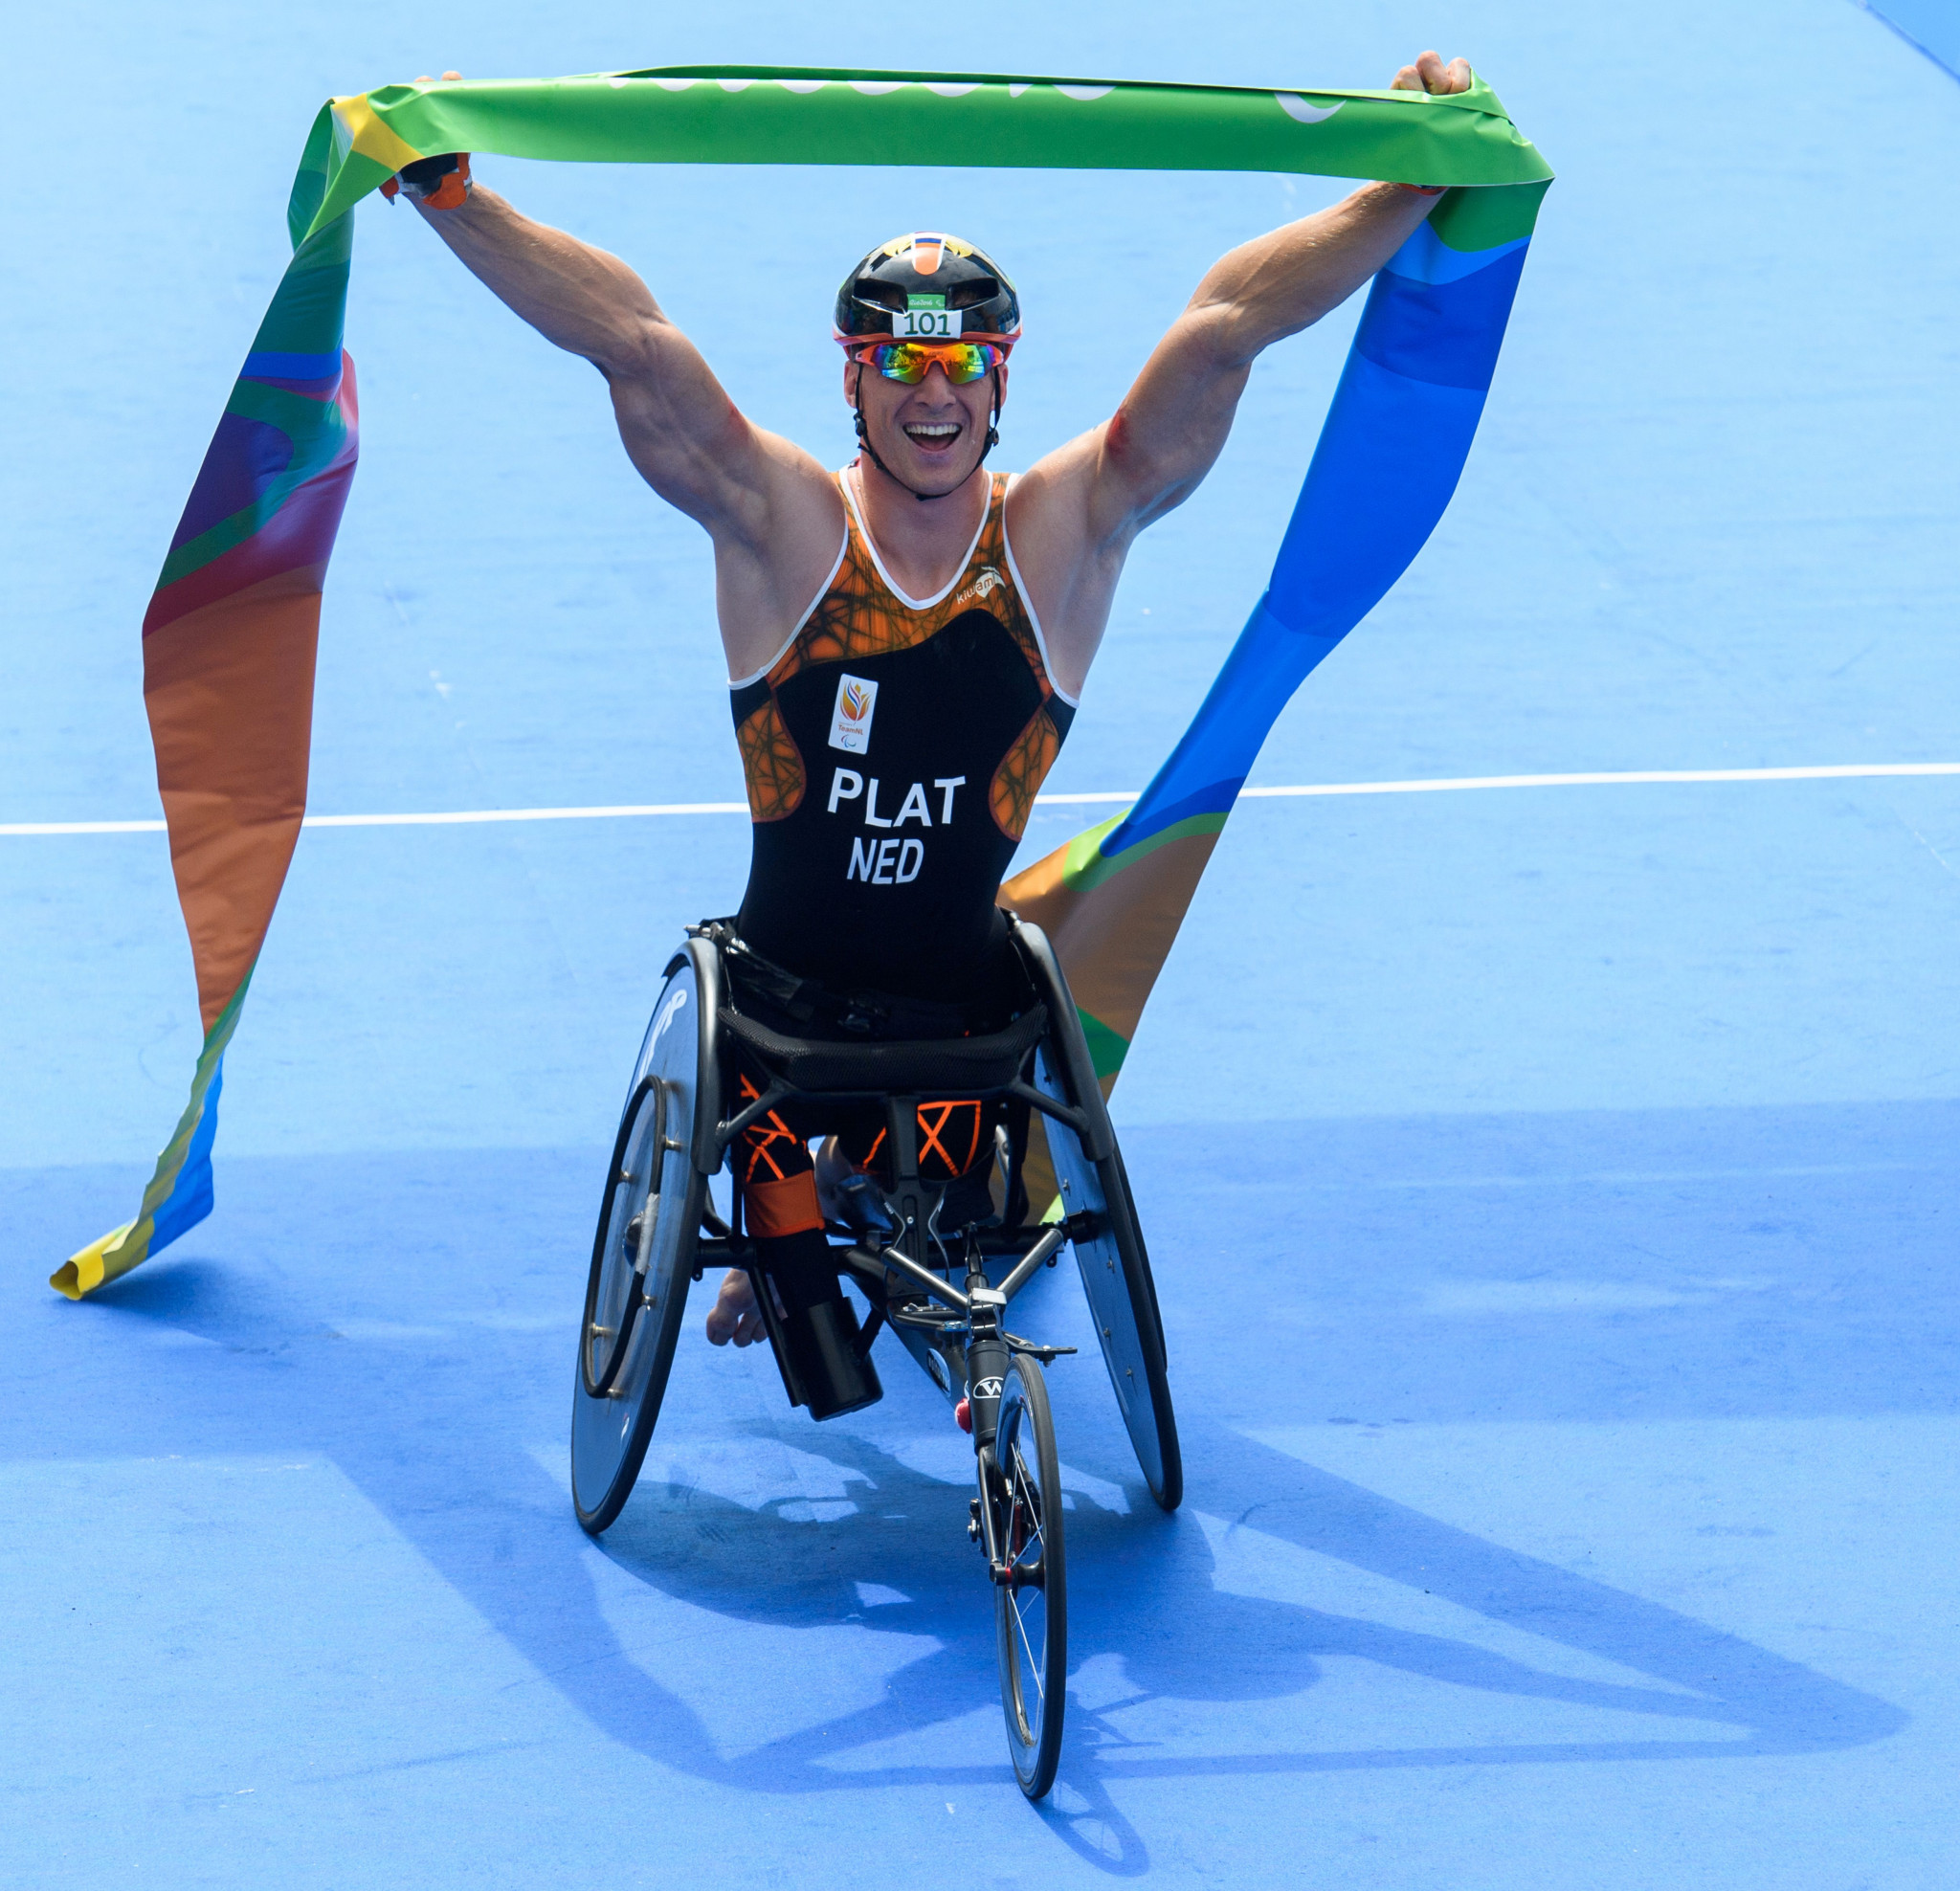 Plat among favourites to triumph at season-opening ITU World Paratriathlon Series event in Milan